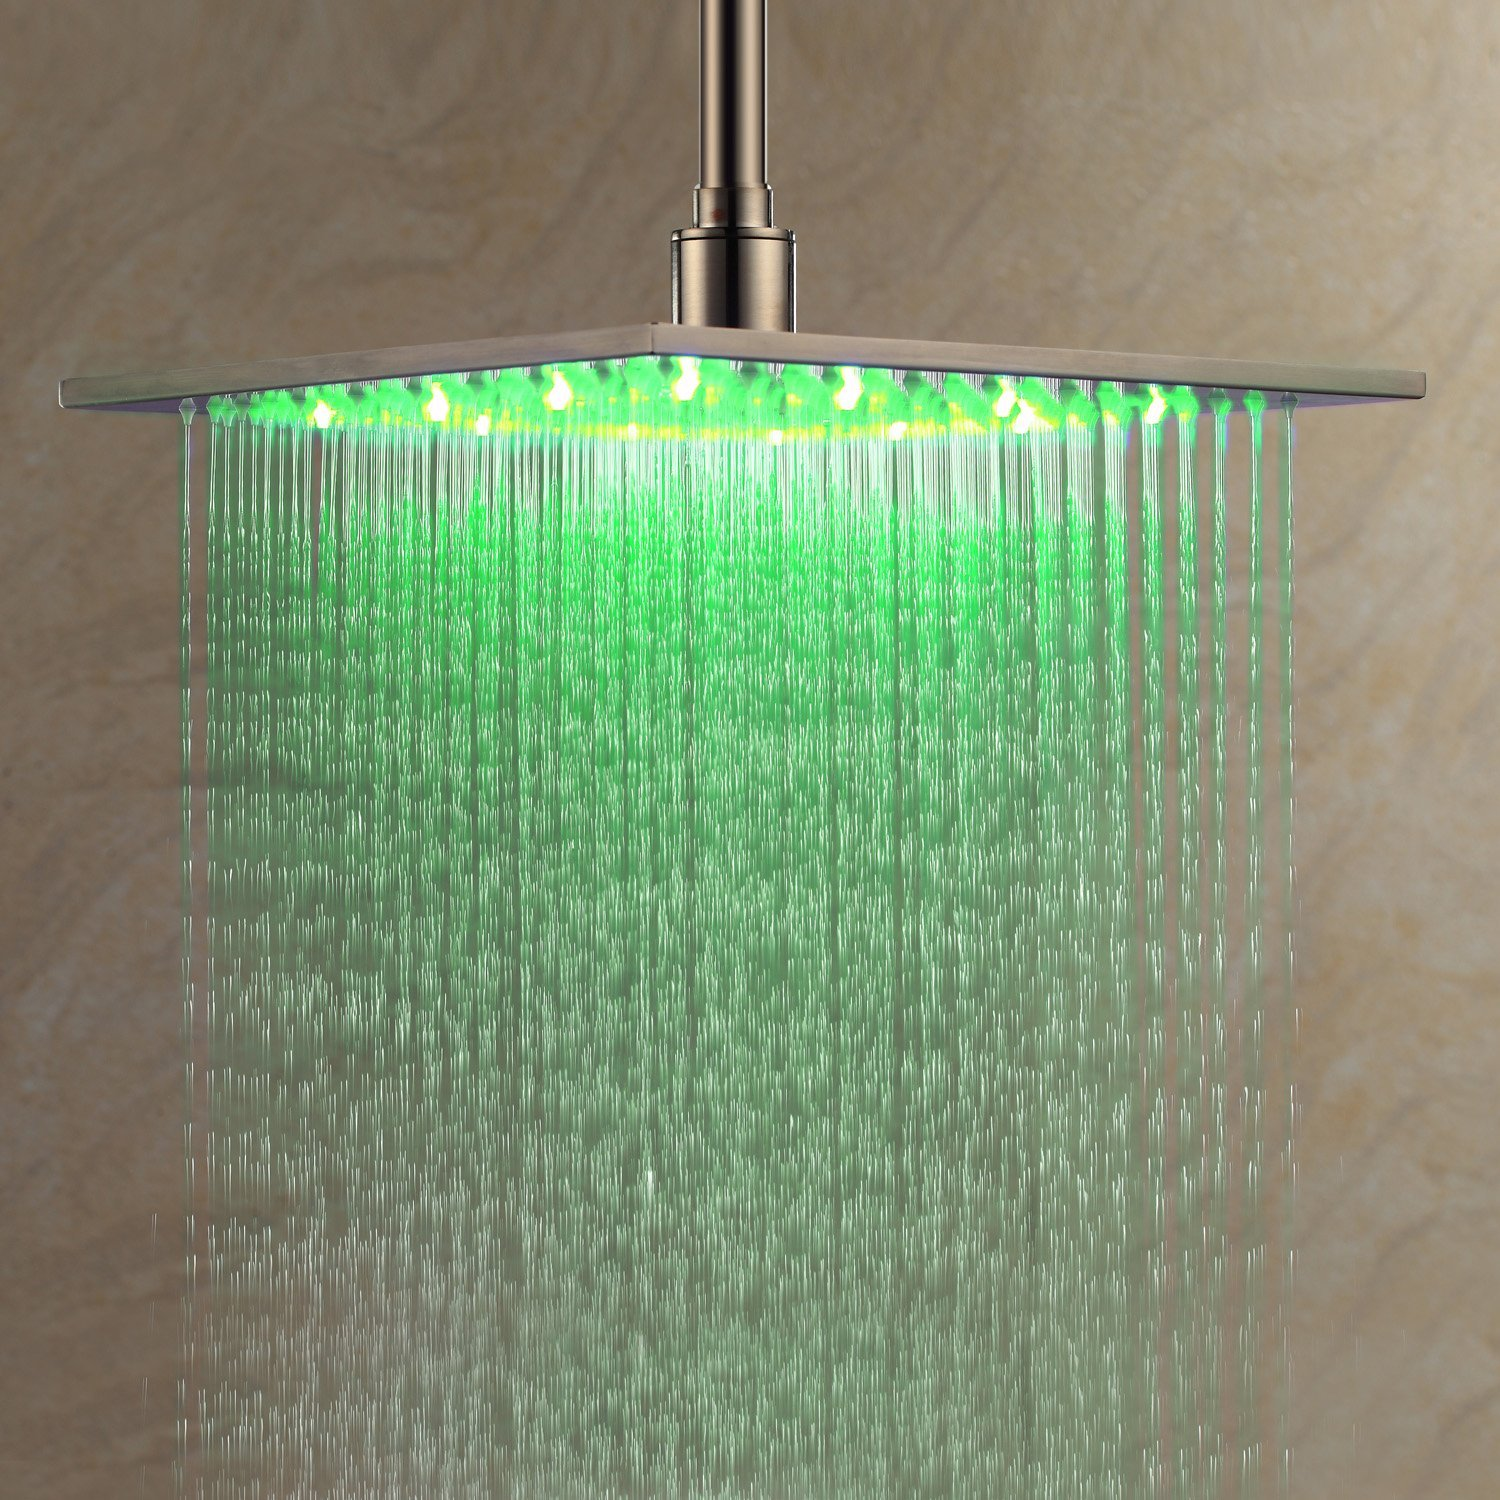 rain head wall shower product ceilings prod mounted blu square ceiling bathworks